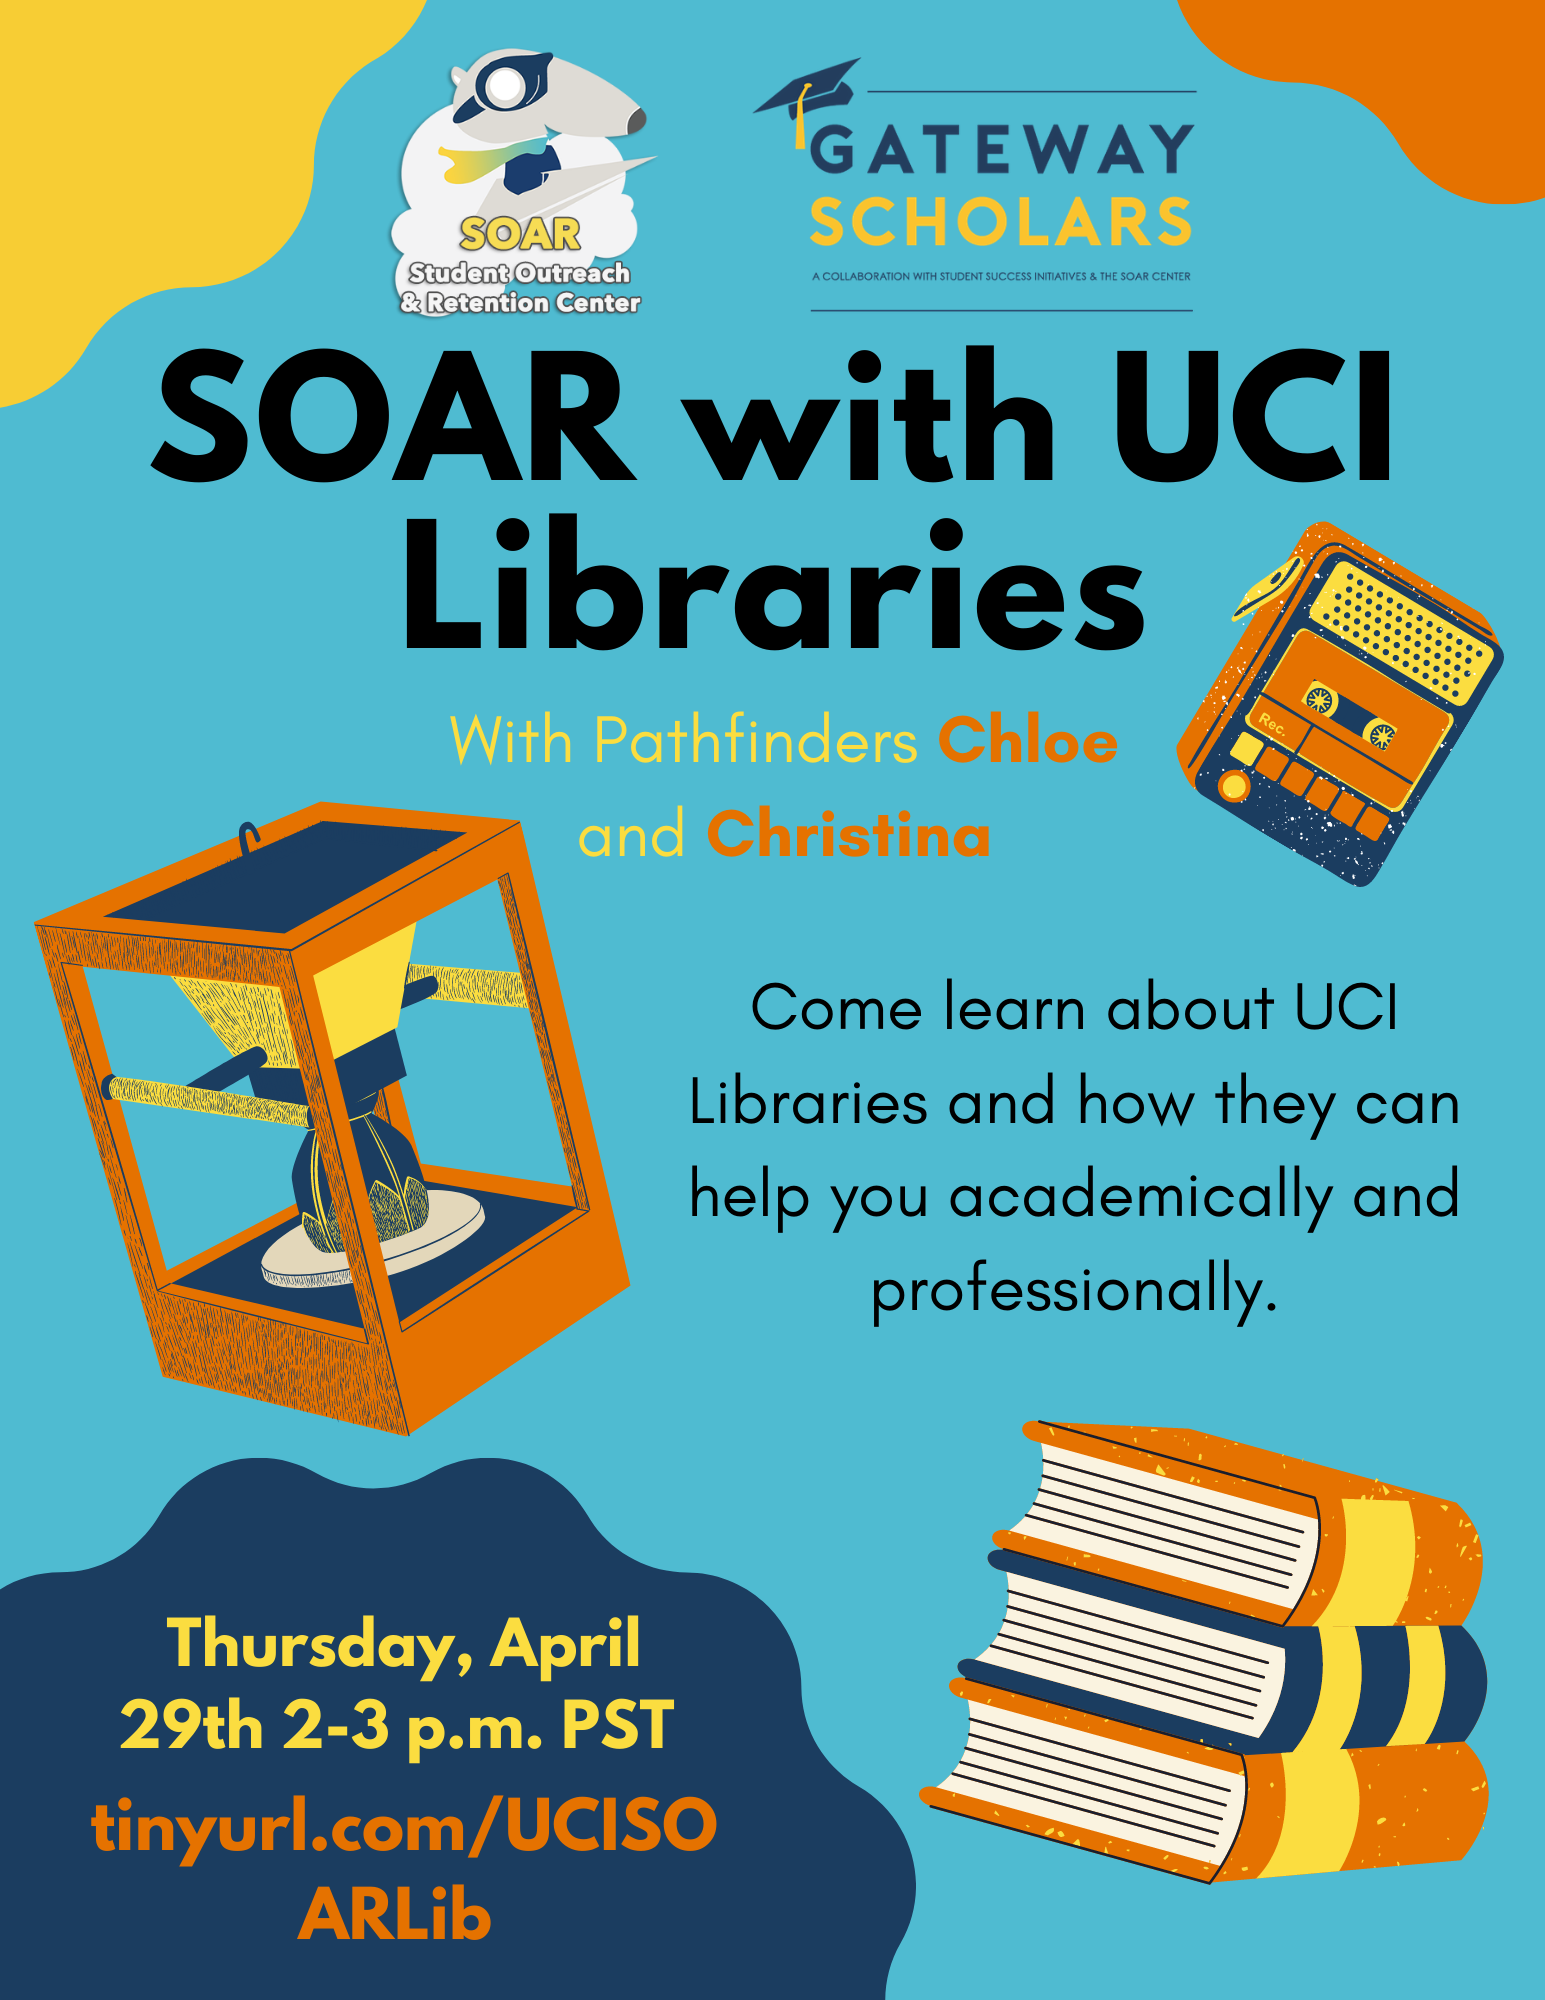 SOAR with UCI Libraries Flyer